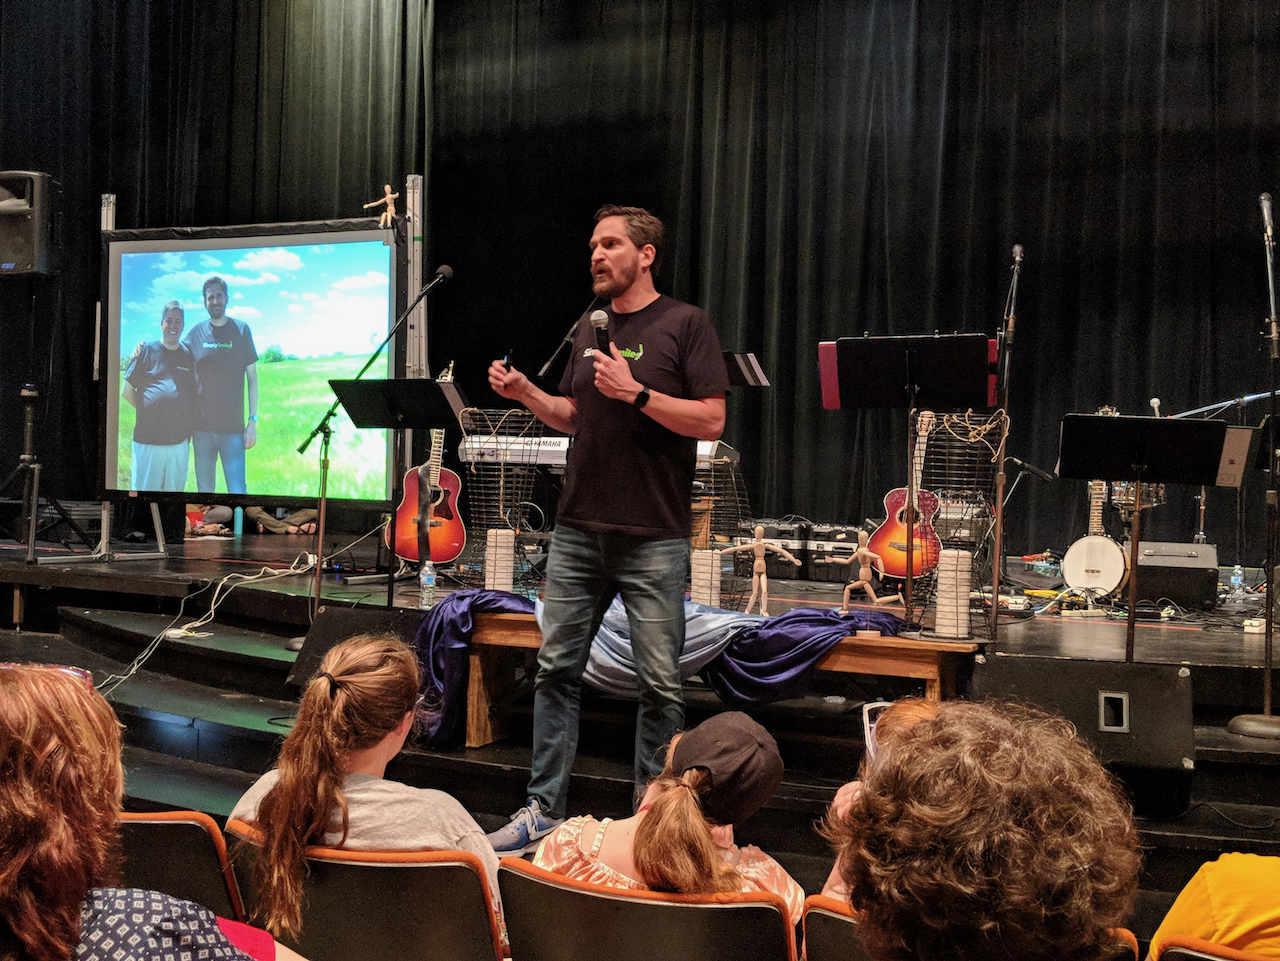 Simply Smiles President and Founder Bryan Nurnberger presents the keynote address at the West Central Regional Youth Event in 2018.